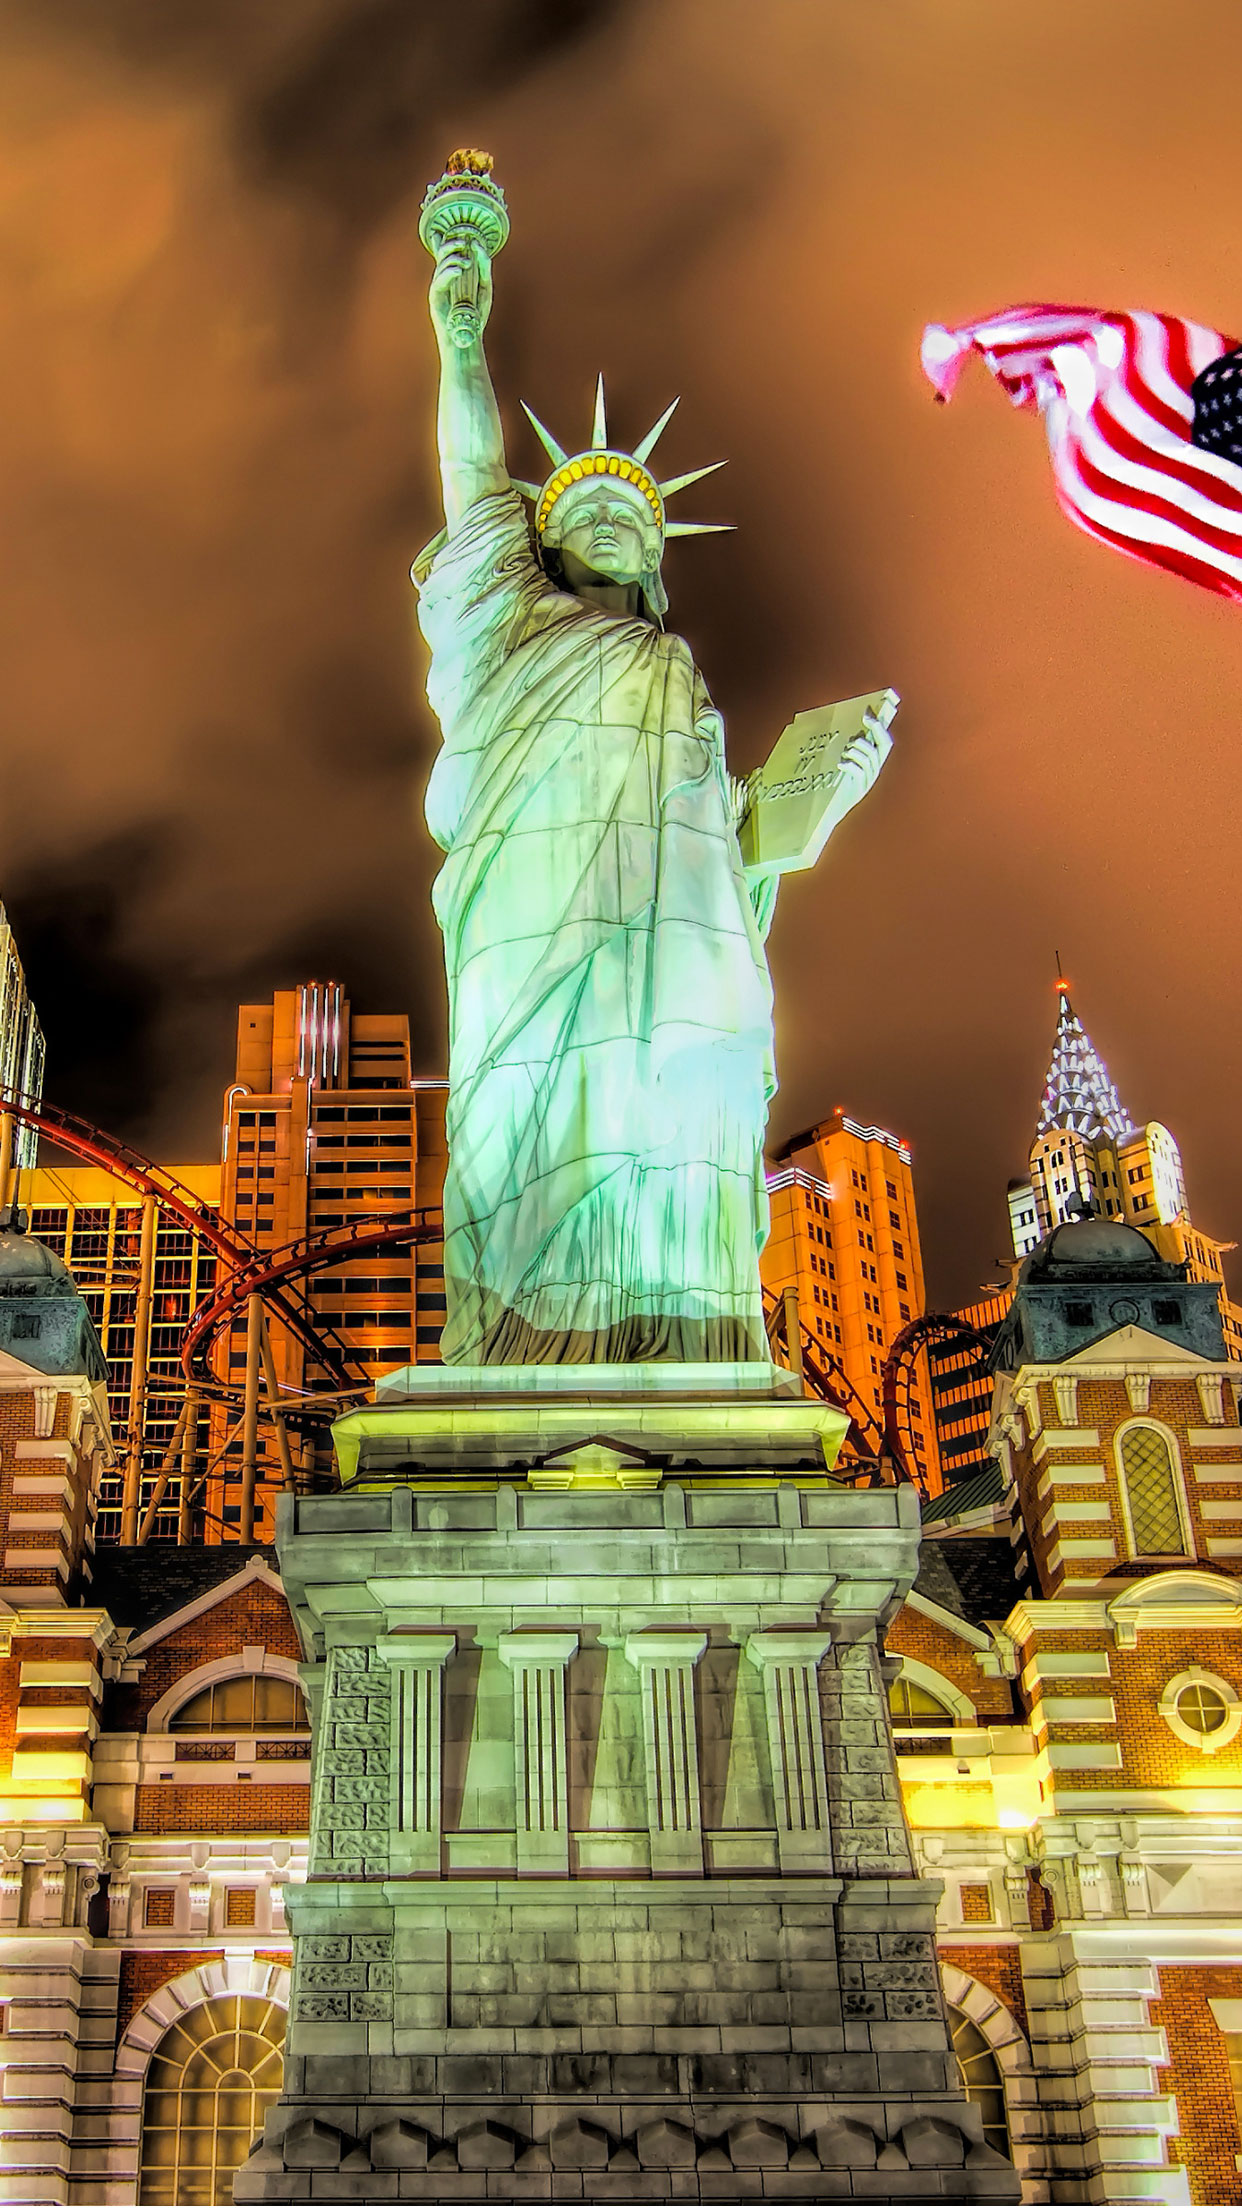 Las Vegas Liberty Wallpaper For Iphone 11 Pro Max X 8 7 6 Free Download On 3wallpapers